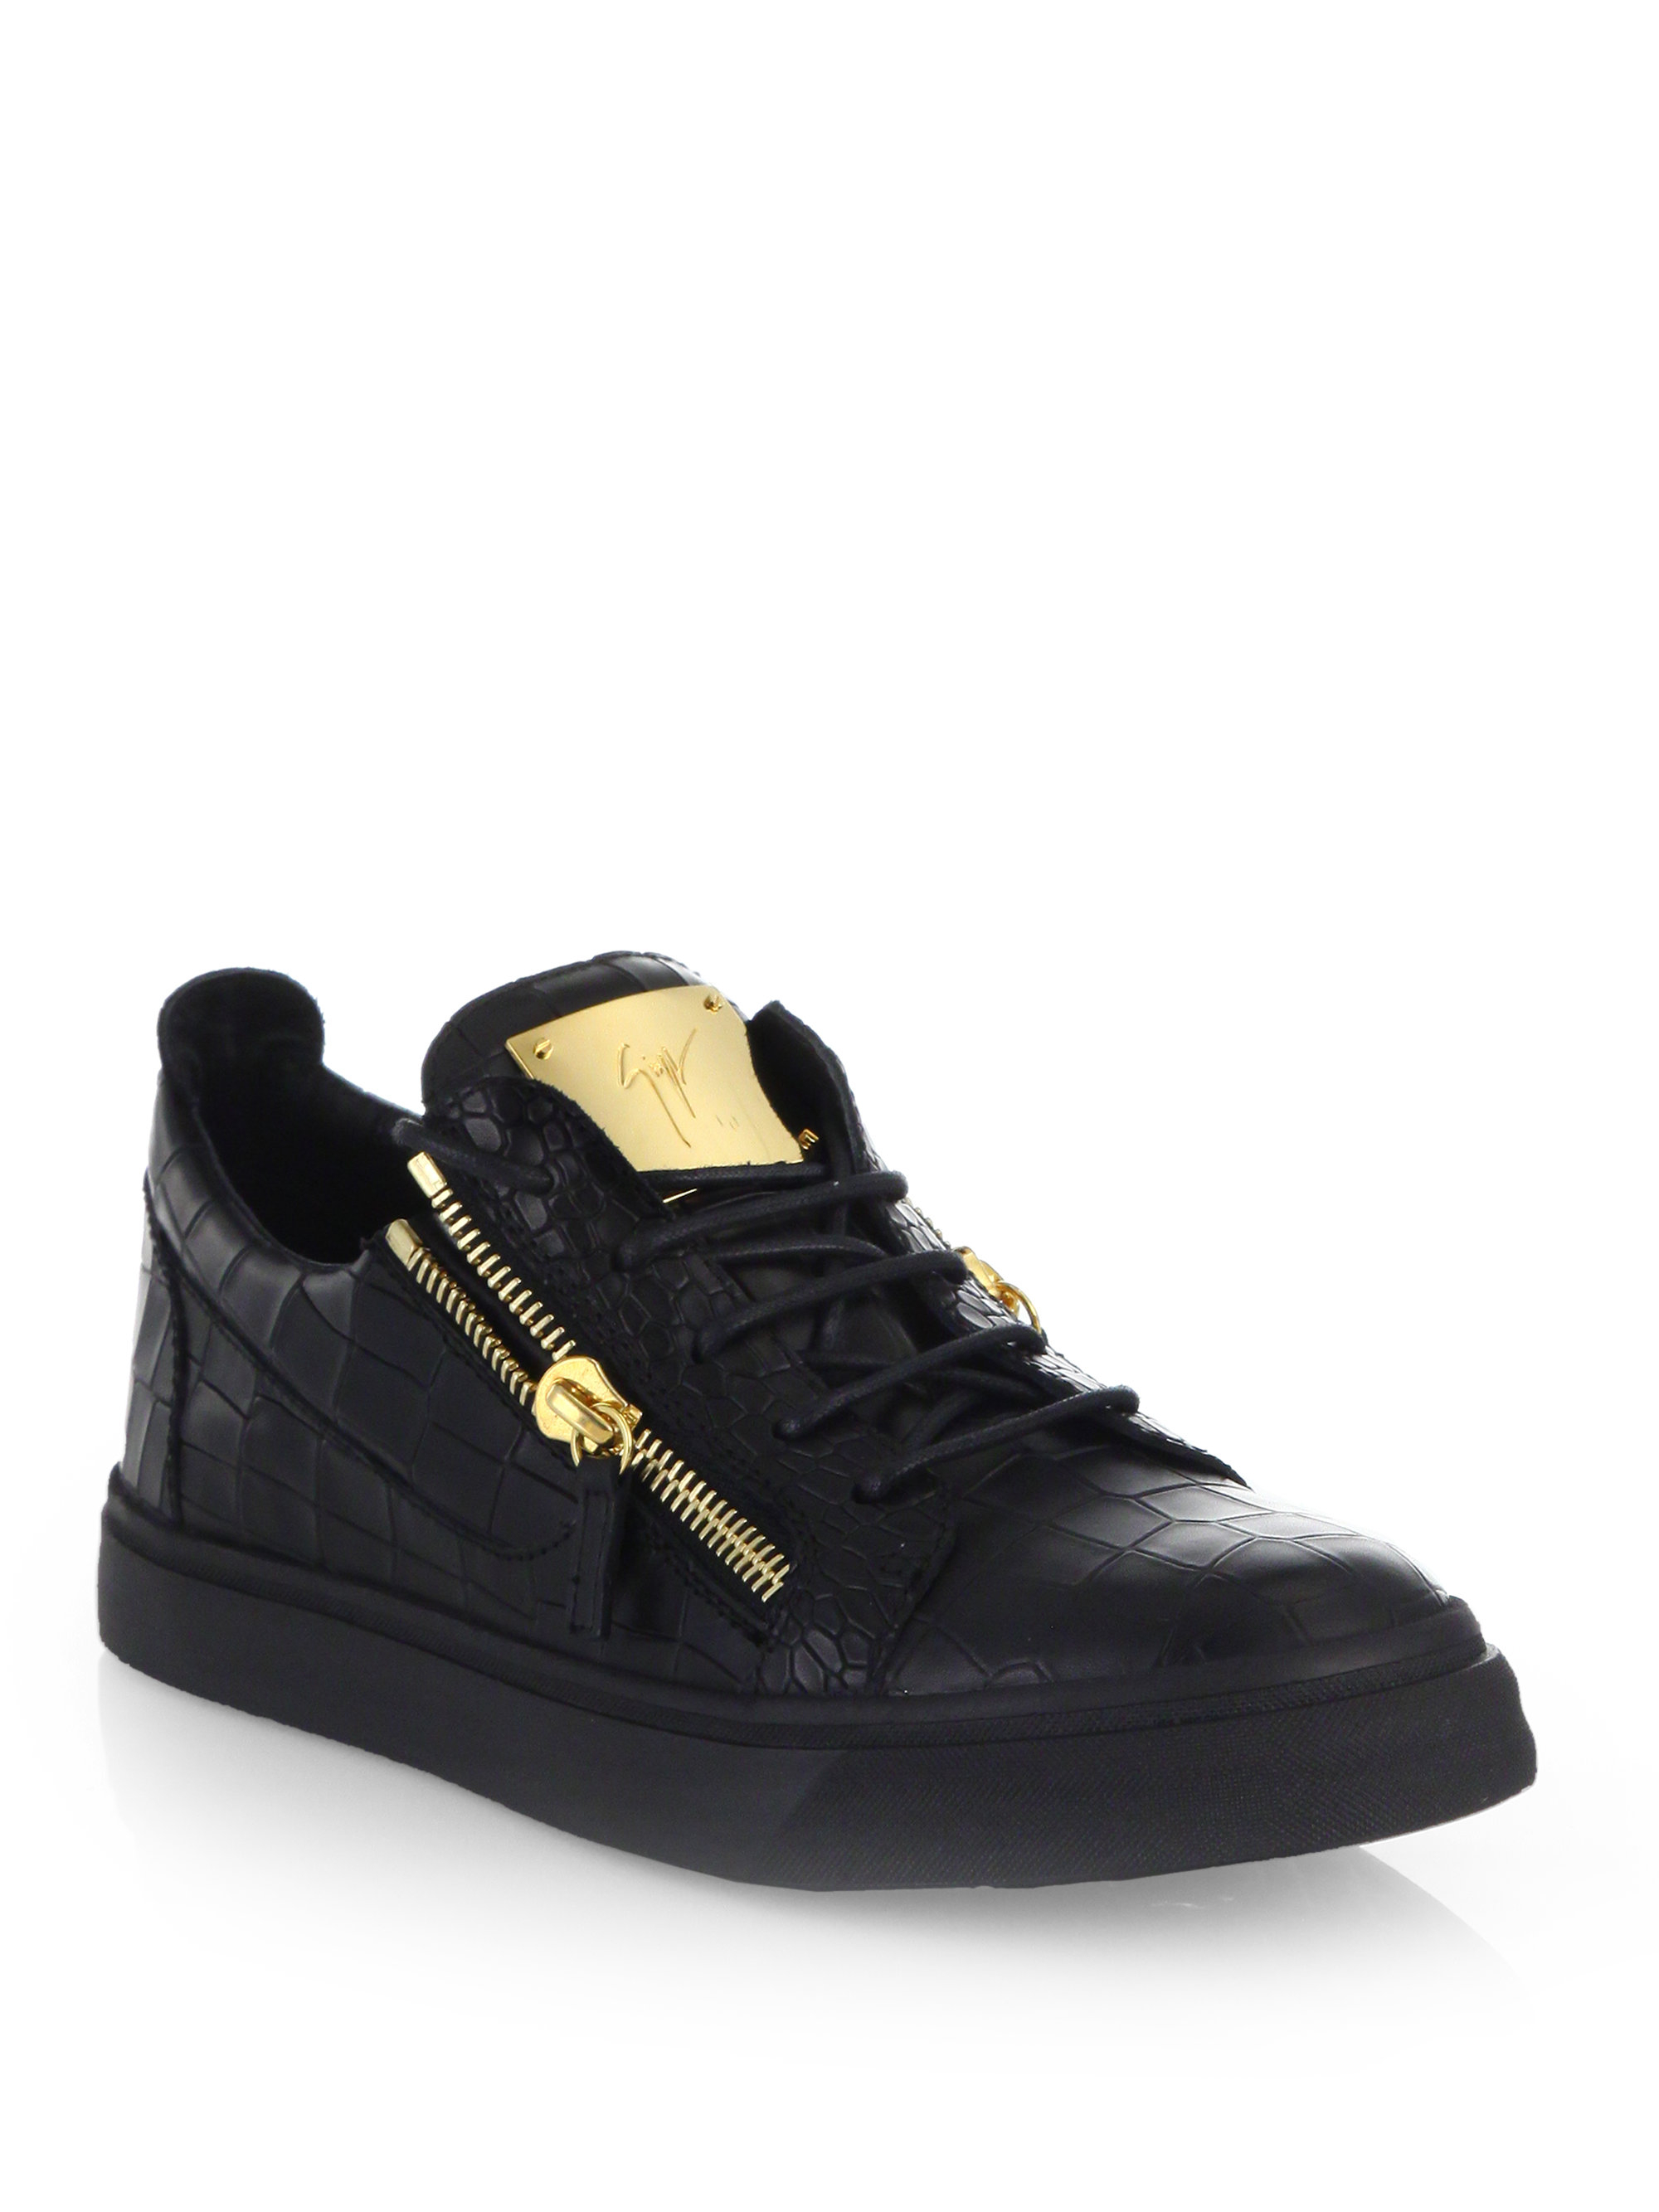 Giuseppe zanotti Leather Croc-embossed Low-top Sneakers in Black for Men | Lyst